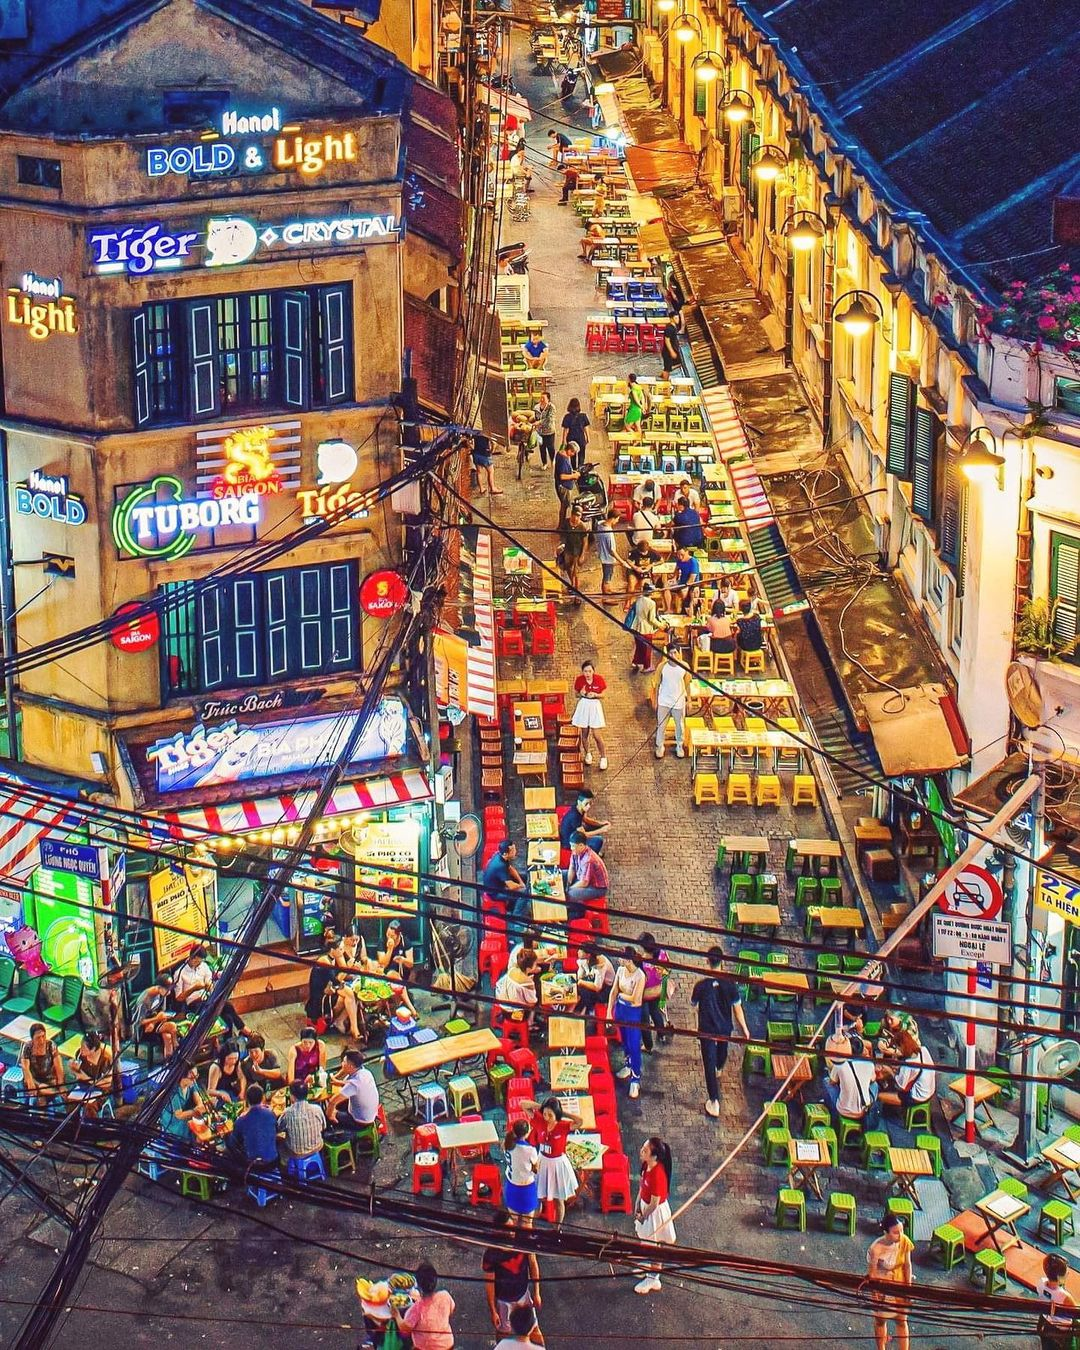 'Back in action after COVID-19. A colorful corner in Hanoi. Ta Hien street, also known as the beer street.' Photo and words by Prabu Mohan